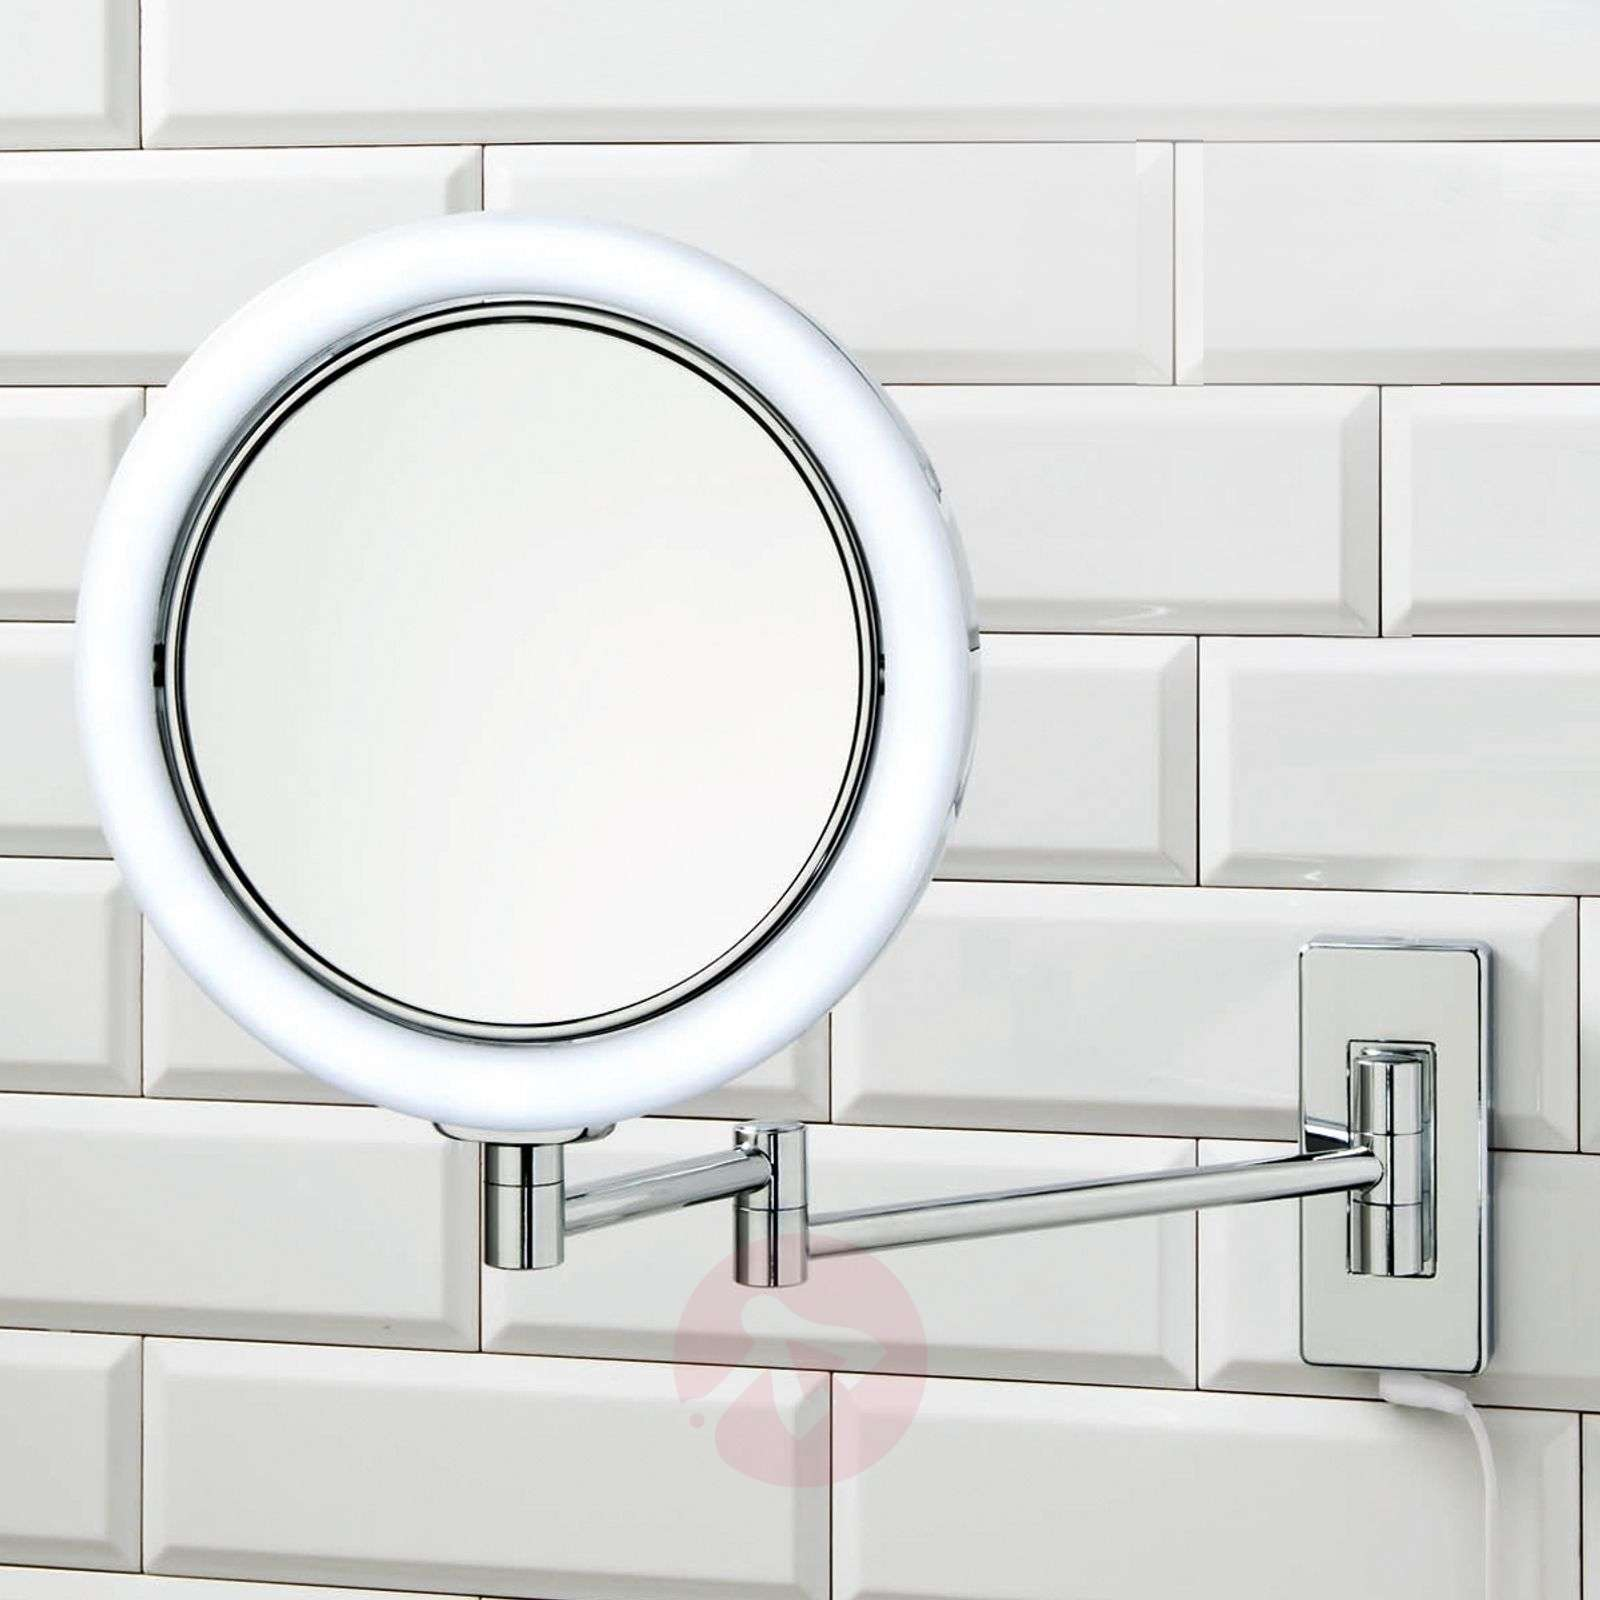 Beau miroir grossissant bs 13 v for Beaux miroirs